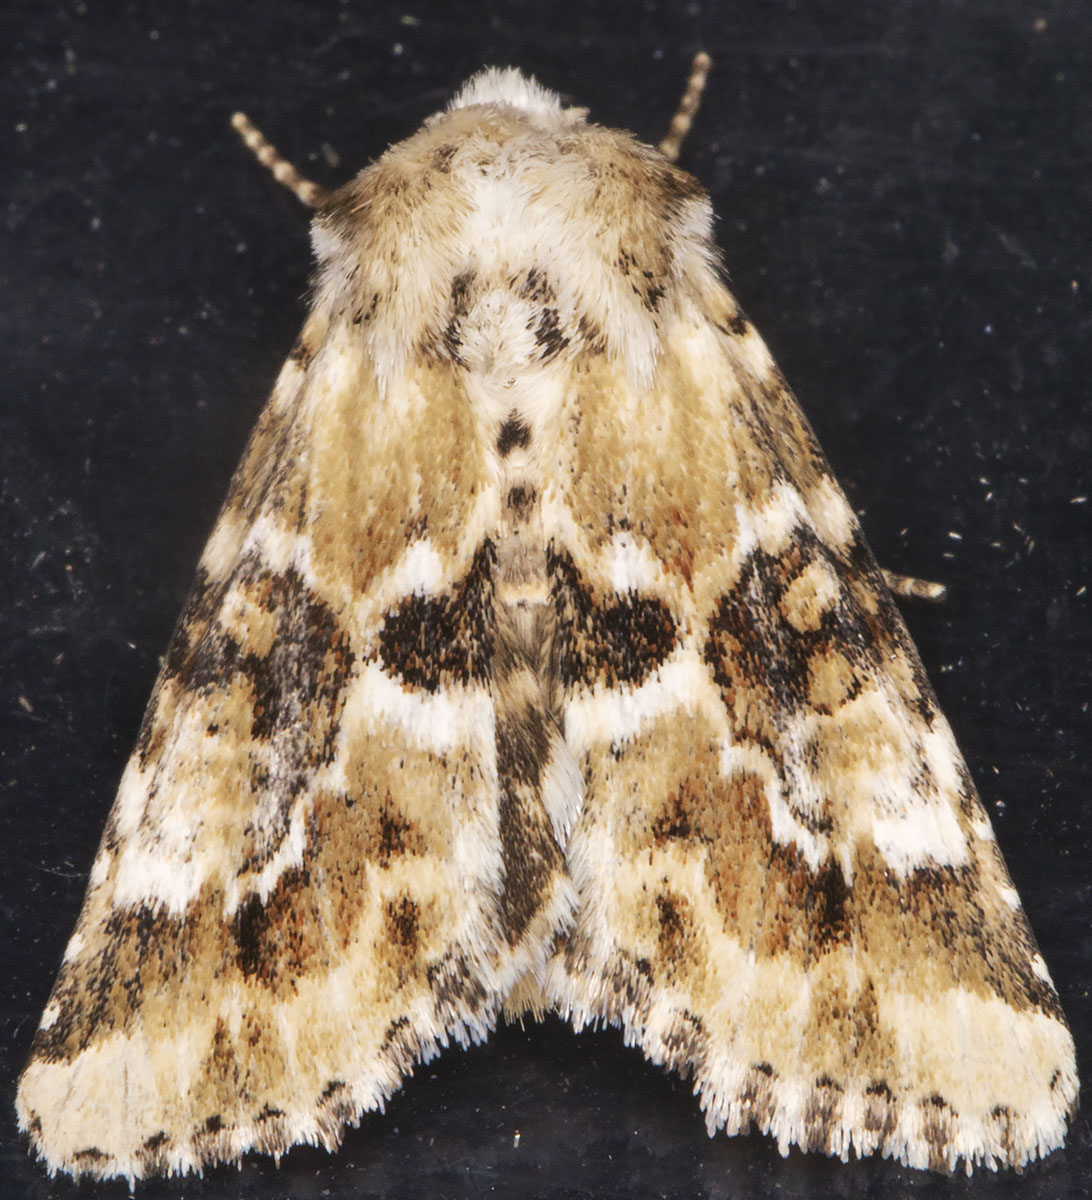 Dusky Sallow, Eremobia ochroleuca.  Noctuidae.  West Wickham Common light trap, 16 July 2014.